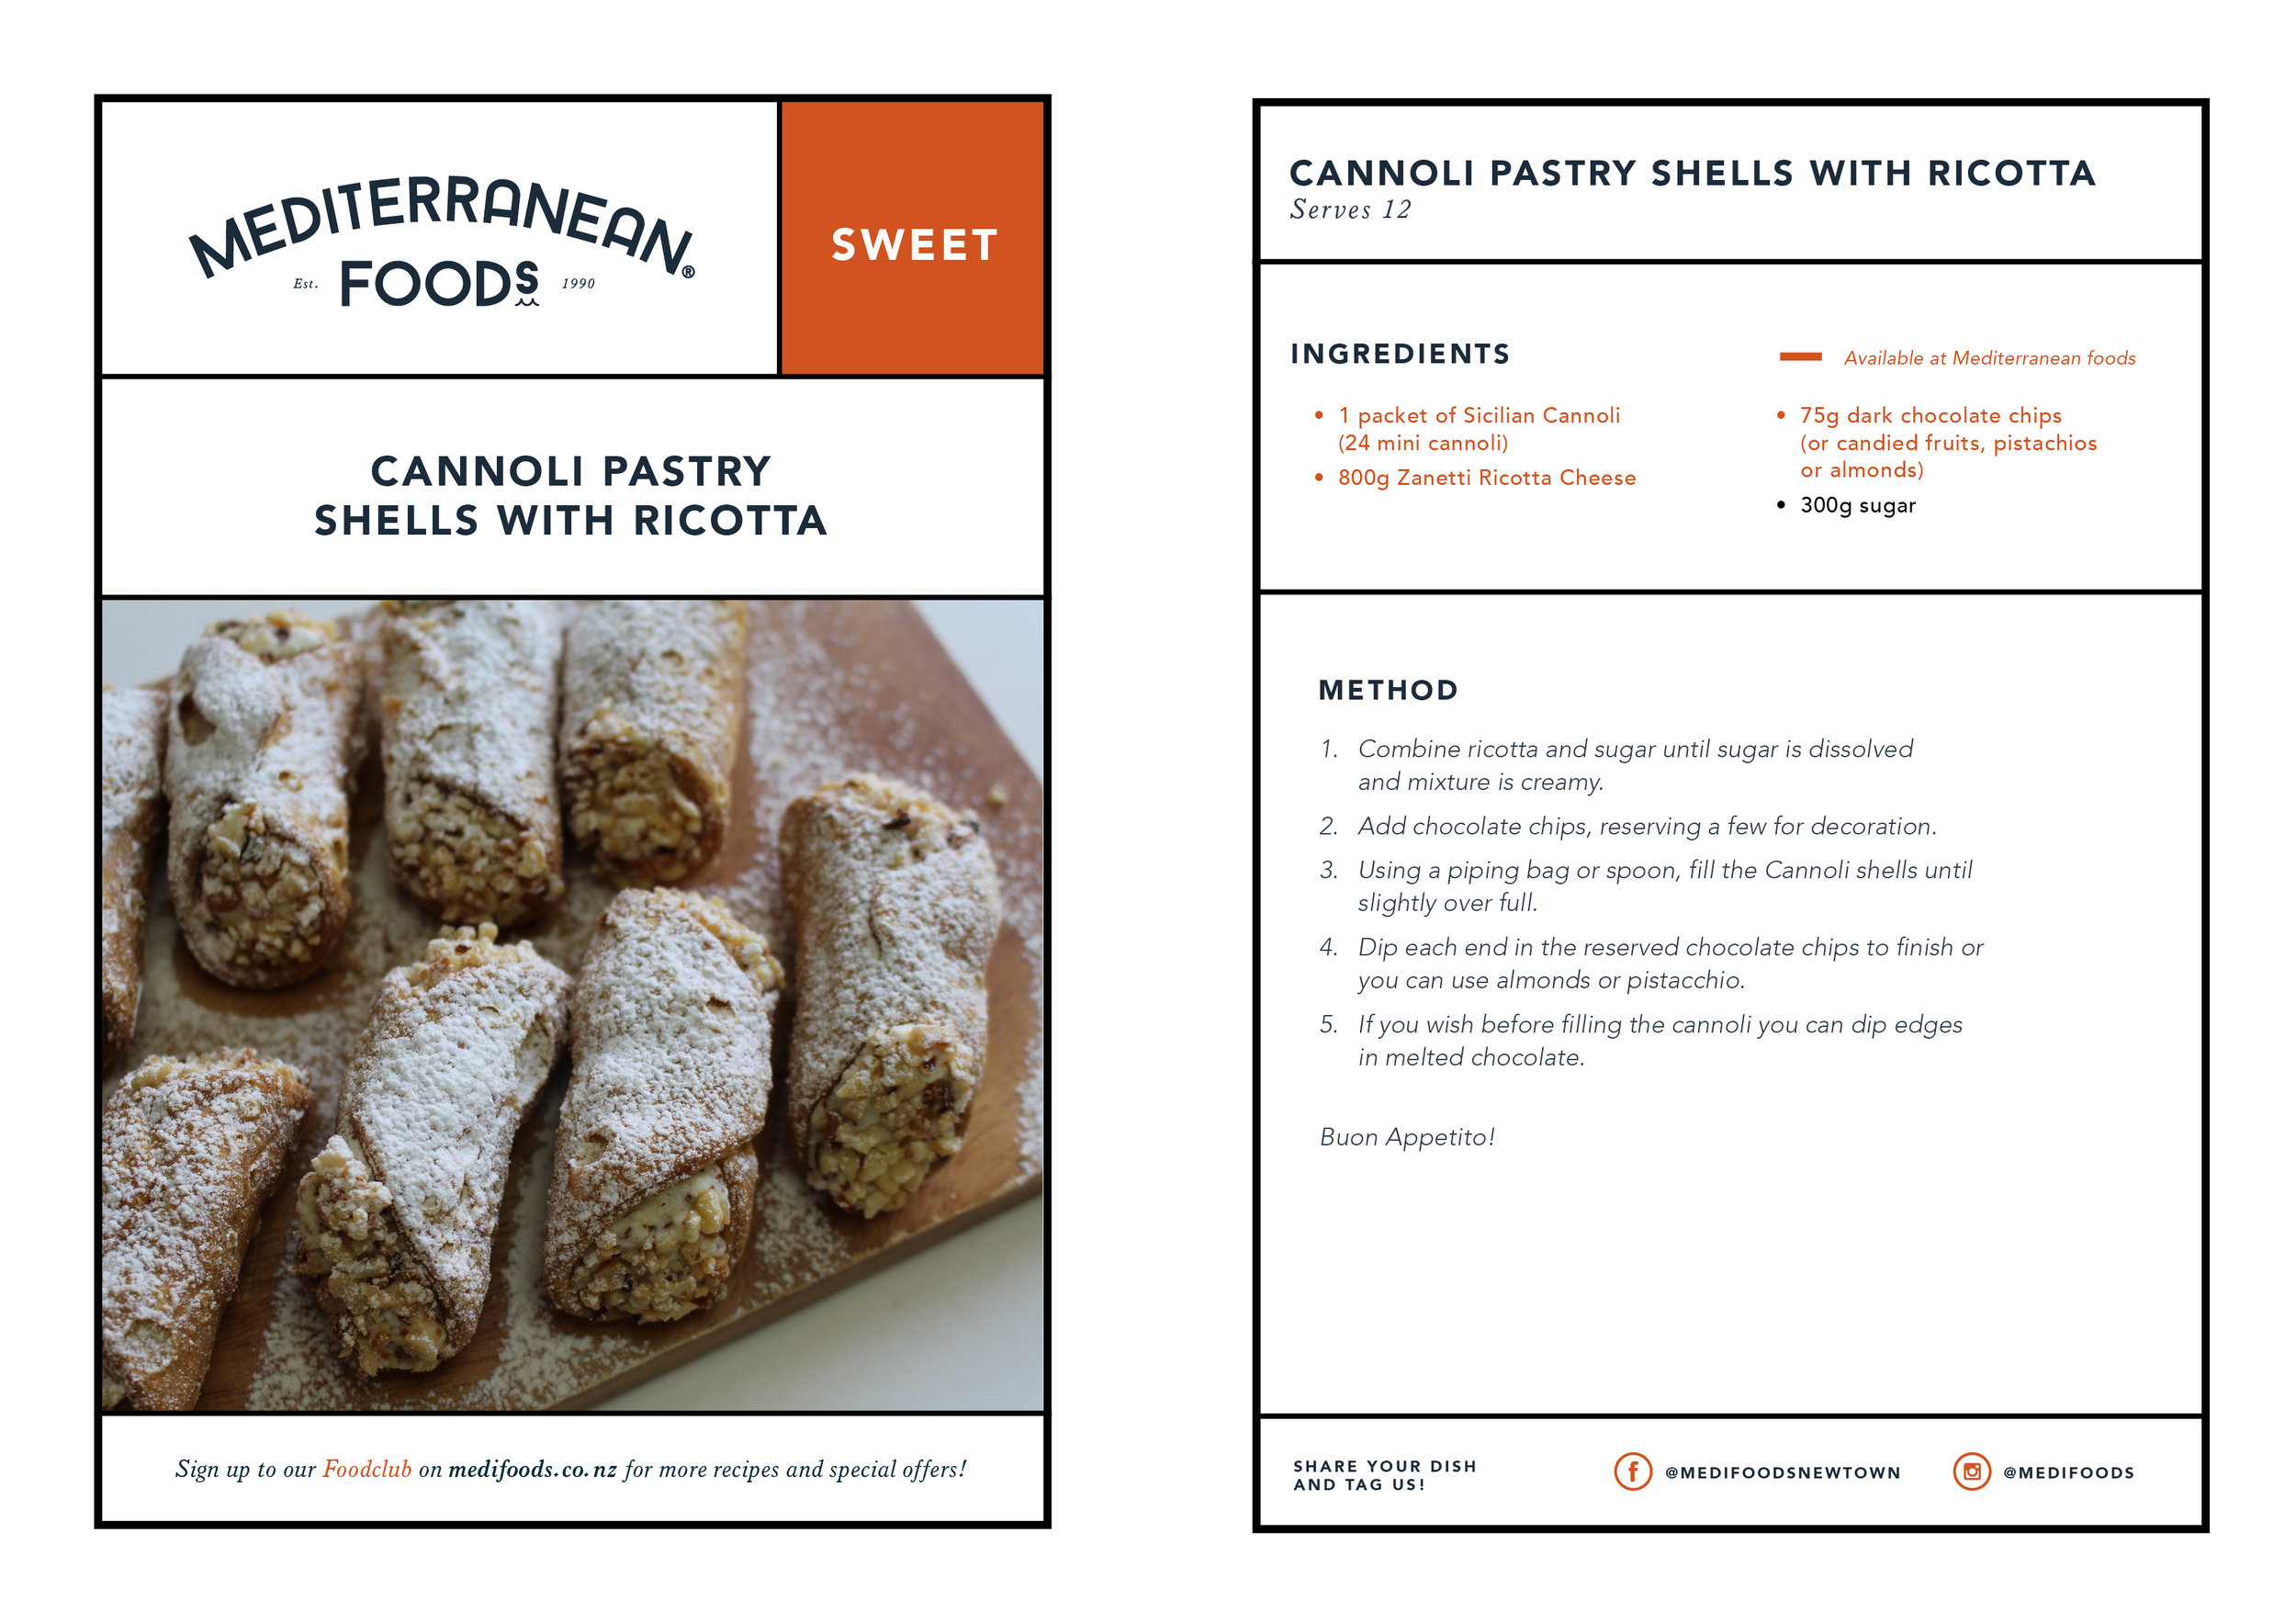 Cannoli pastry shells with ricotta.jpg